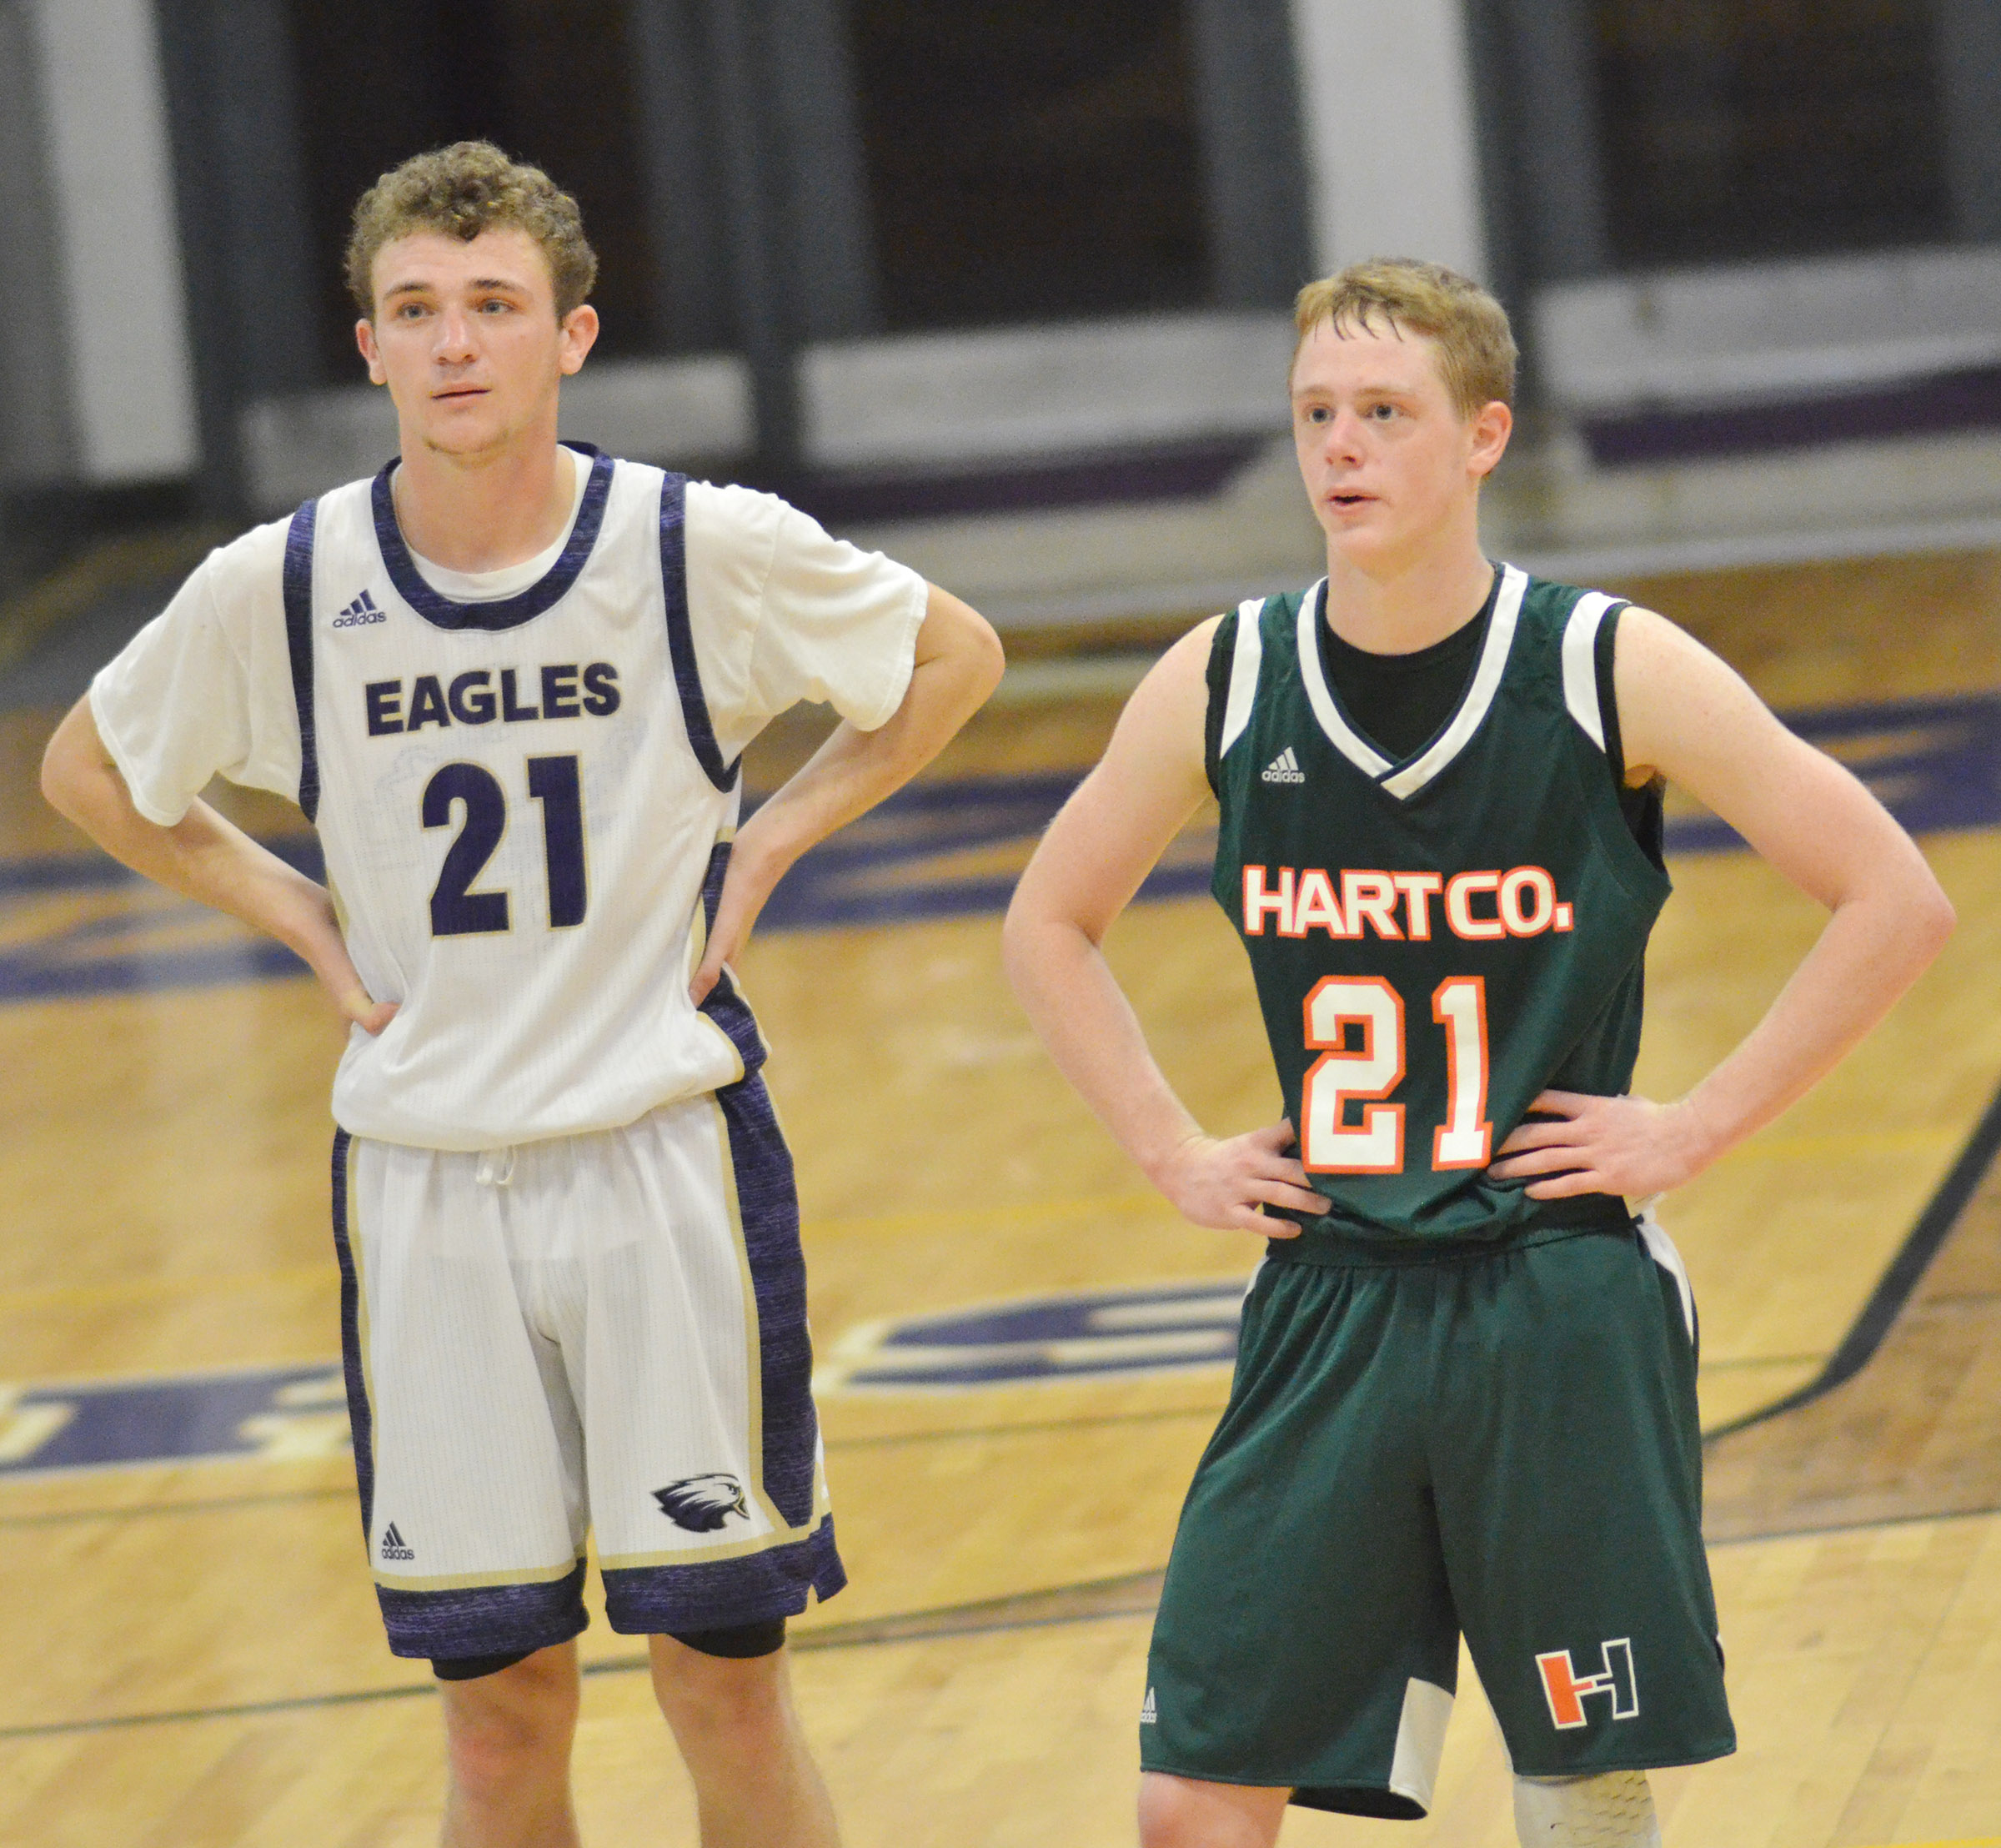 CHS senior Connor Wilson shares a number with a Hart County player.